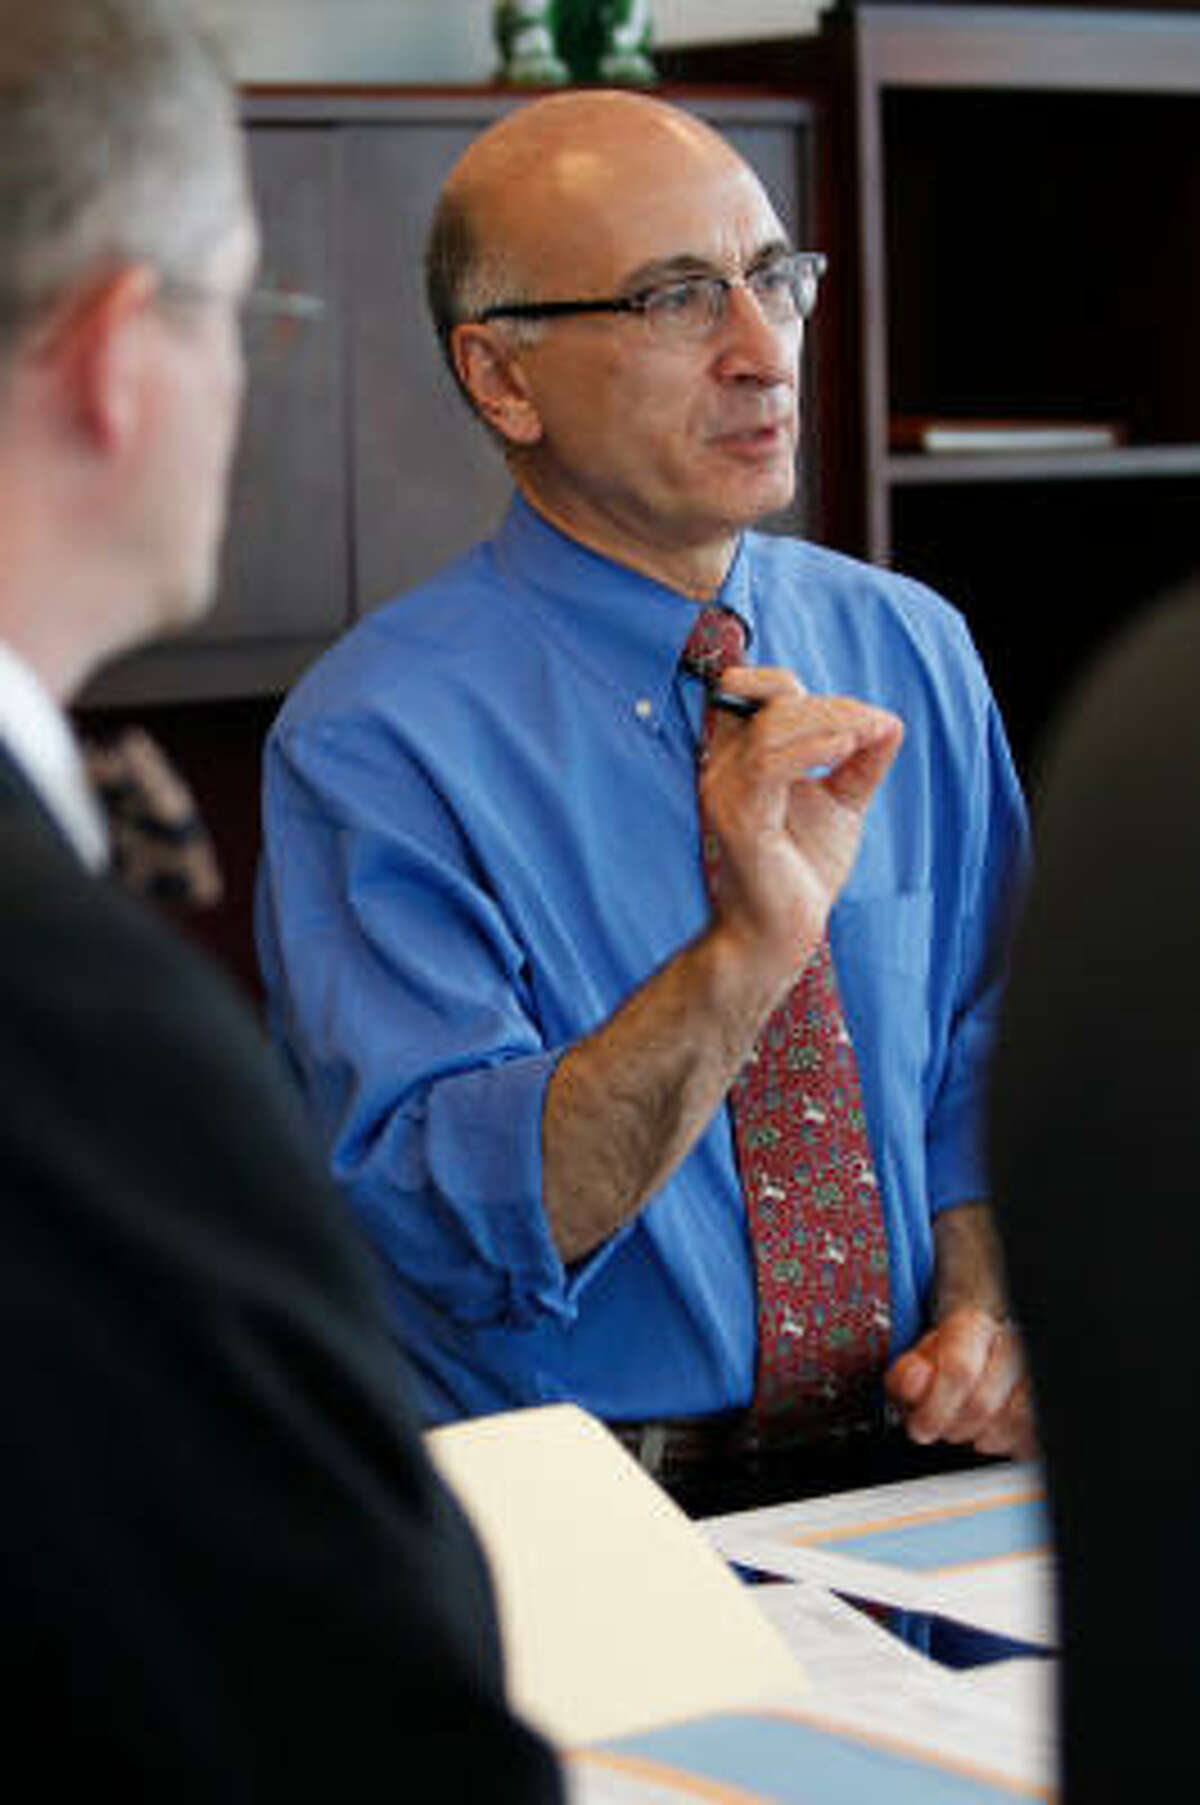 Among other things, George Greanias is known for conducting meetings at Metro headquarters with participants standing, rather than sitting, around a tall square table.